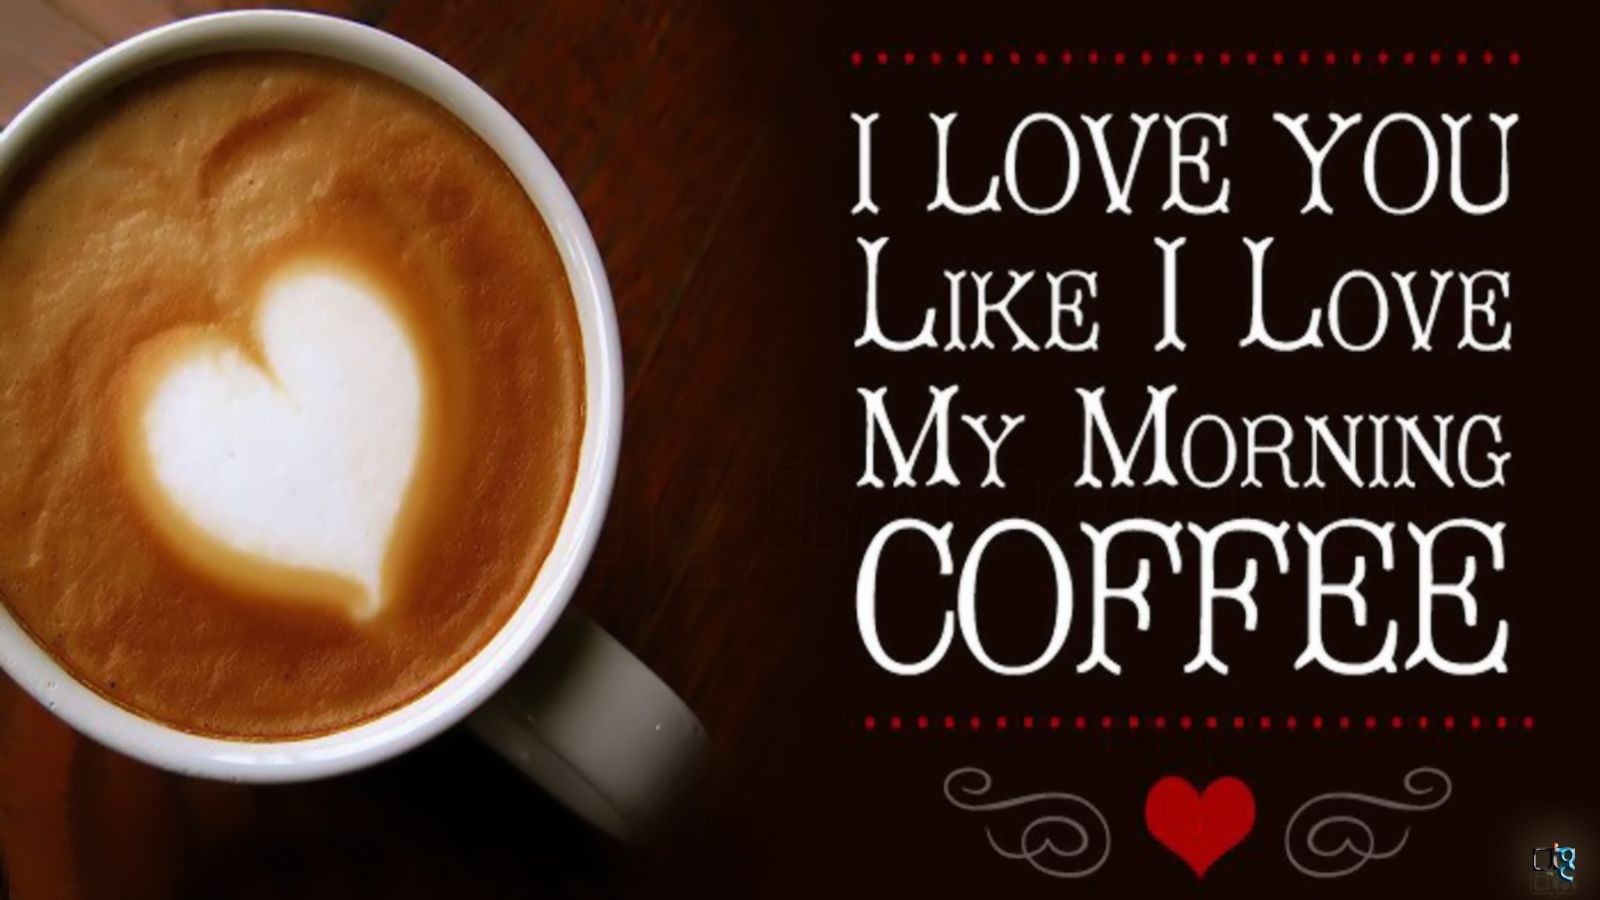 My Morning Coffee I Love You Like You With Quotes Free Cute Good Morning Texts Good Morning My Love Good Morning Text